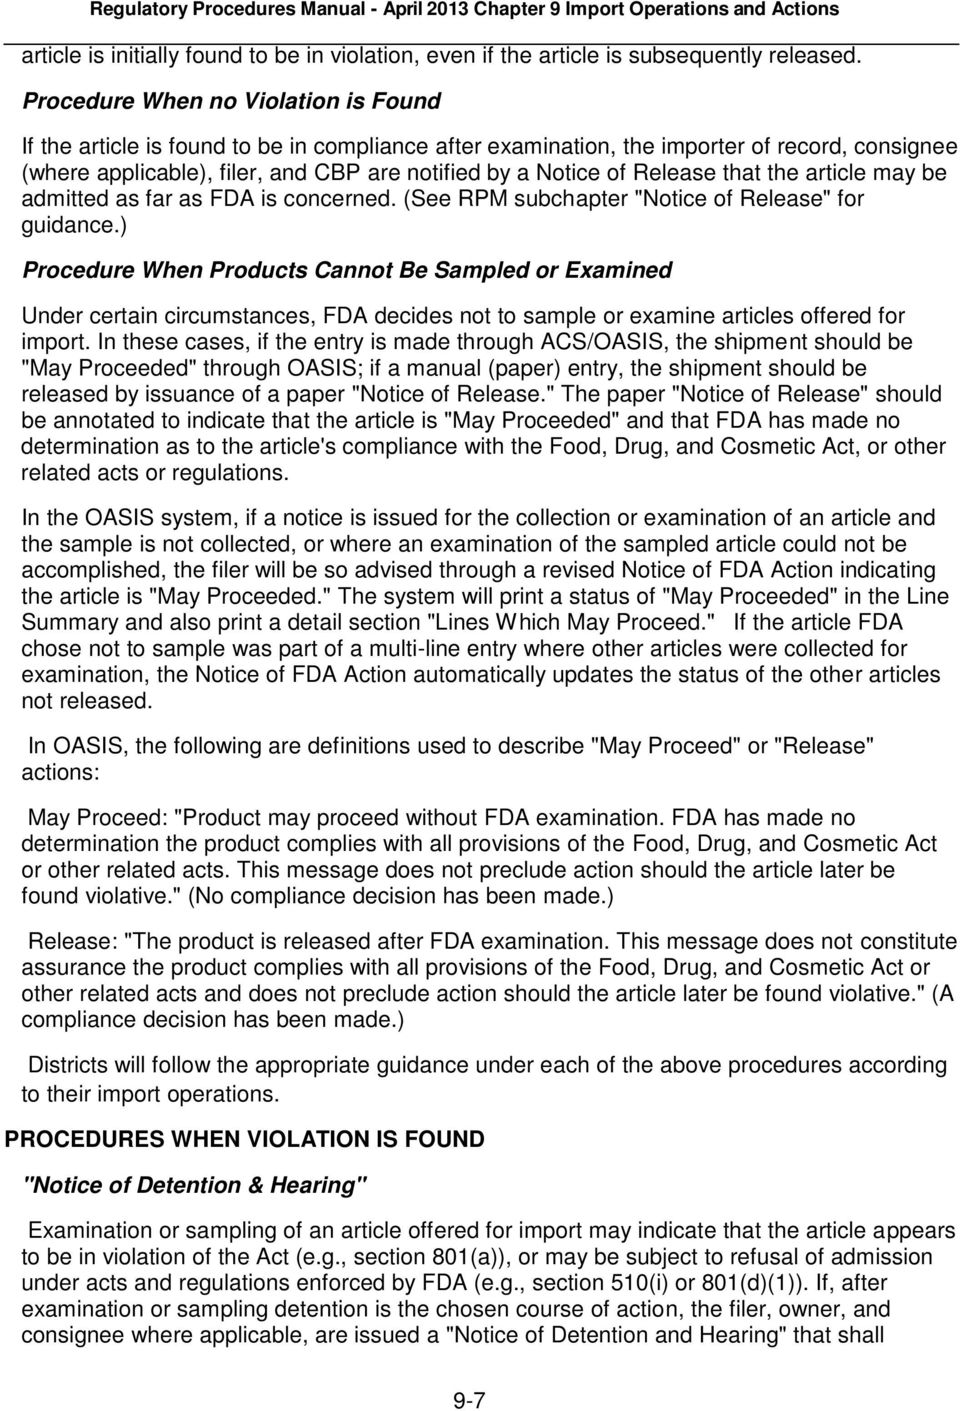 "Release that the article may be admitted as far as FDA is concerned. (See RPM subchapter ""Notice of Release"" for guidance."